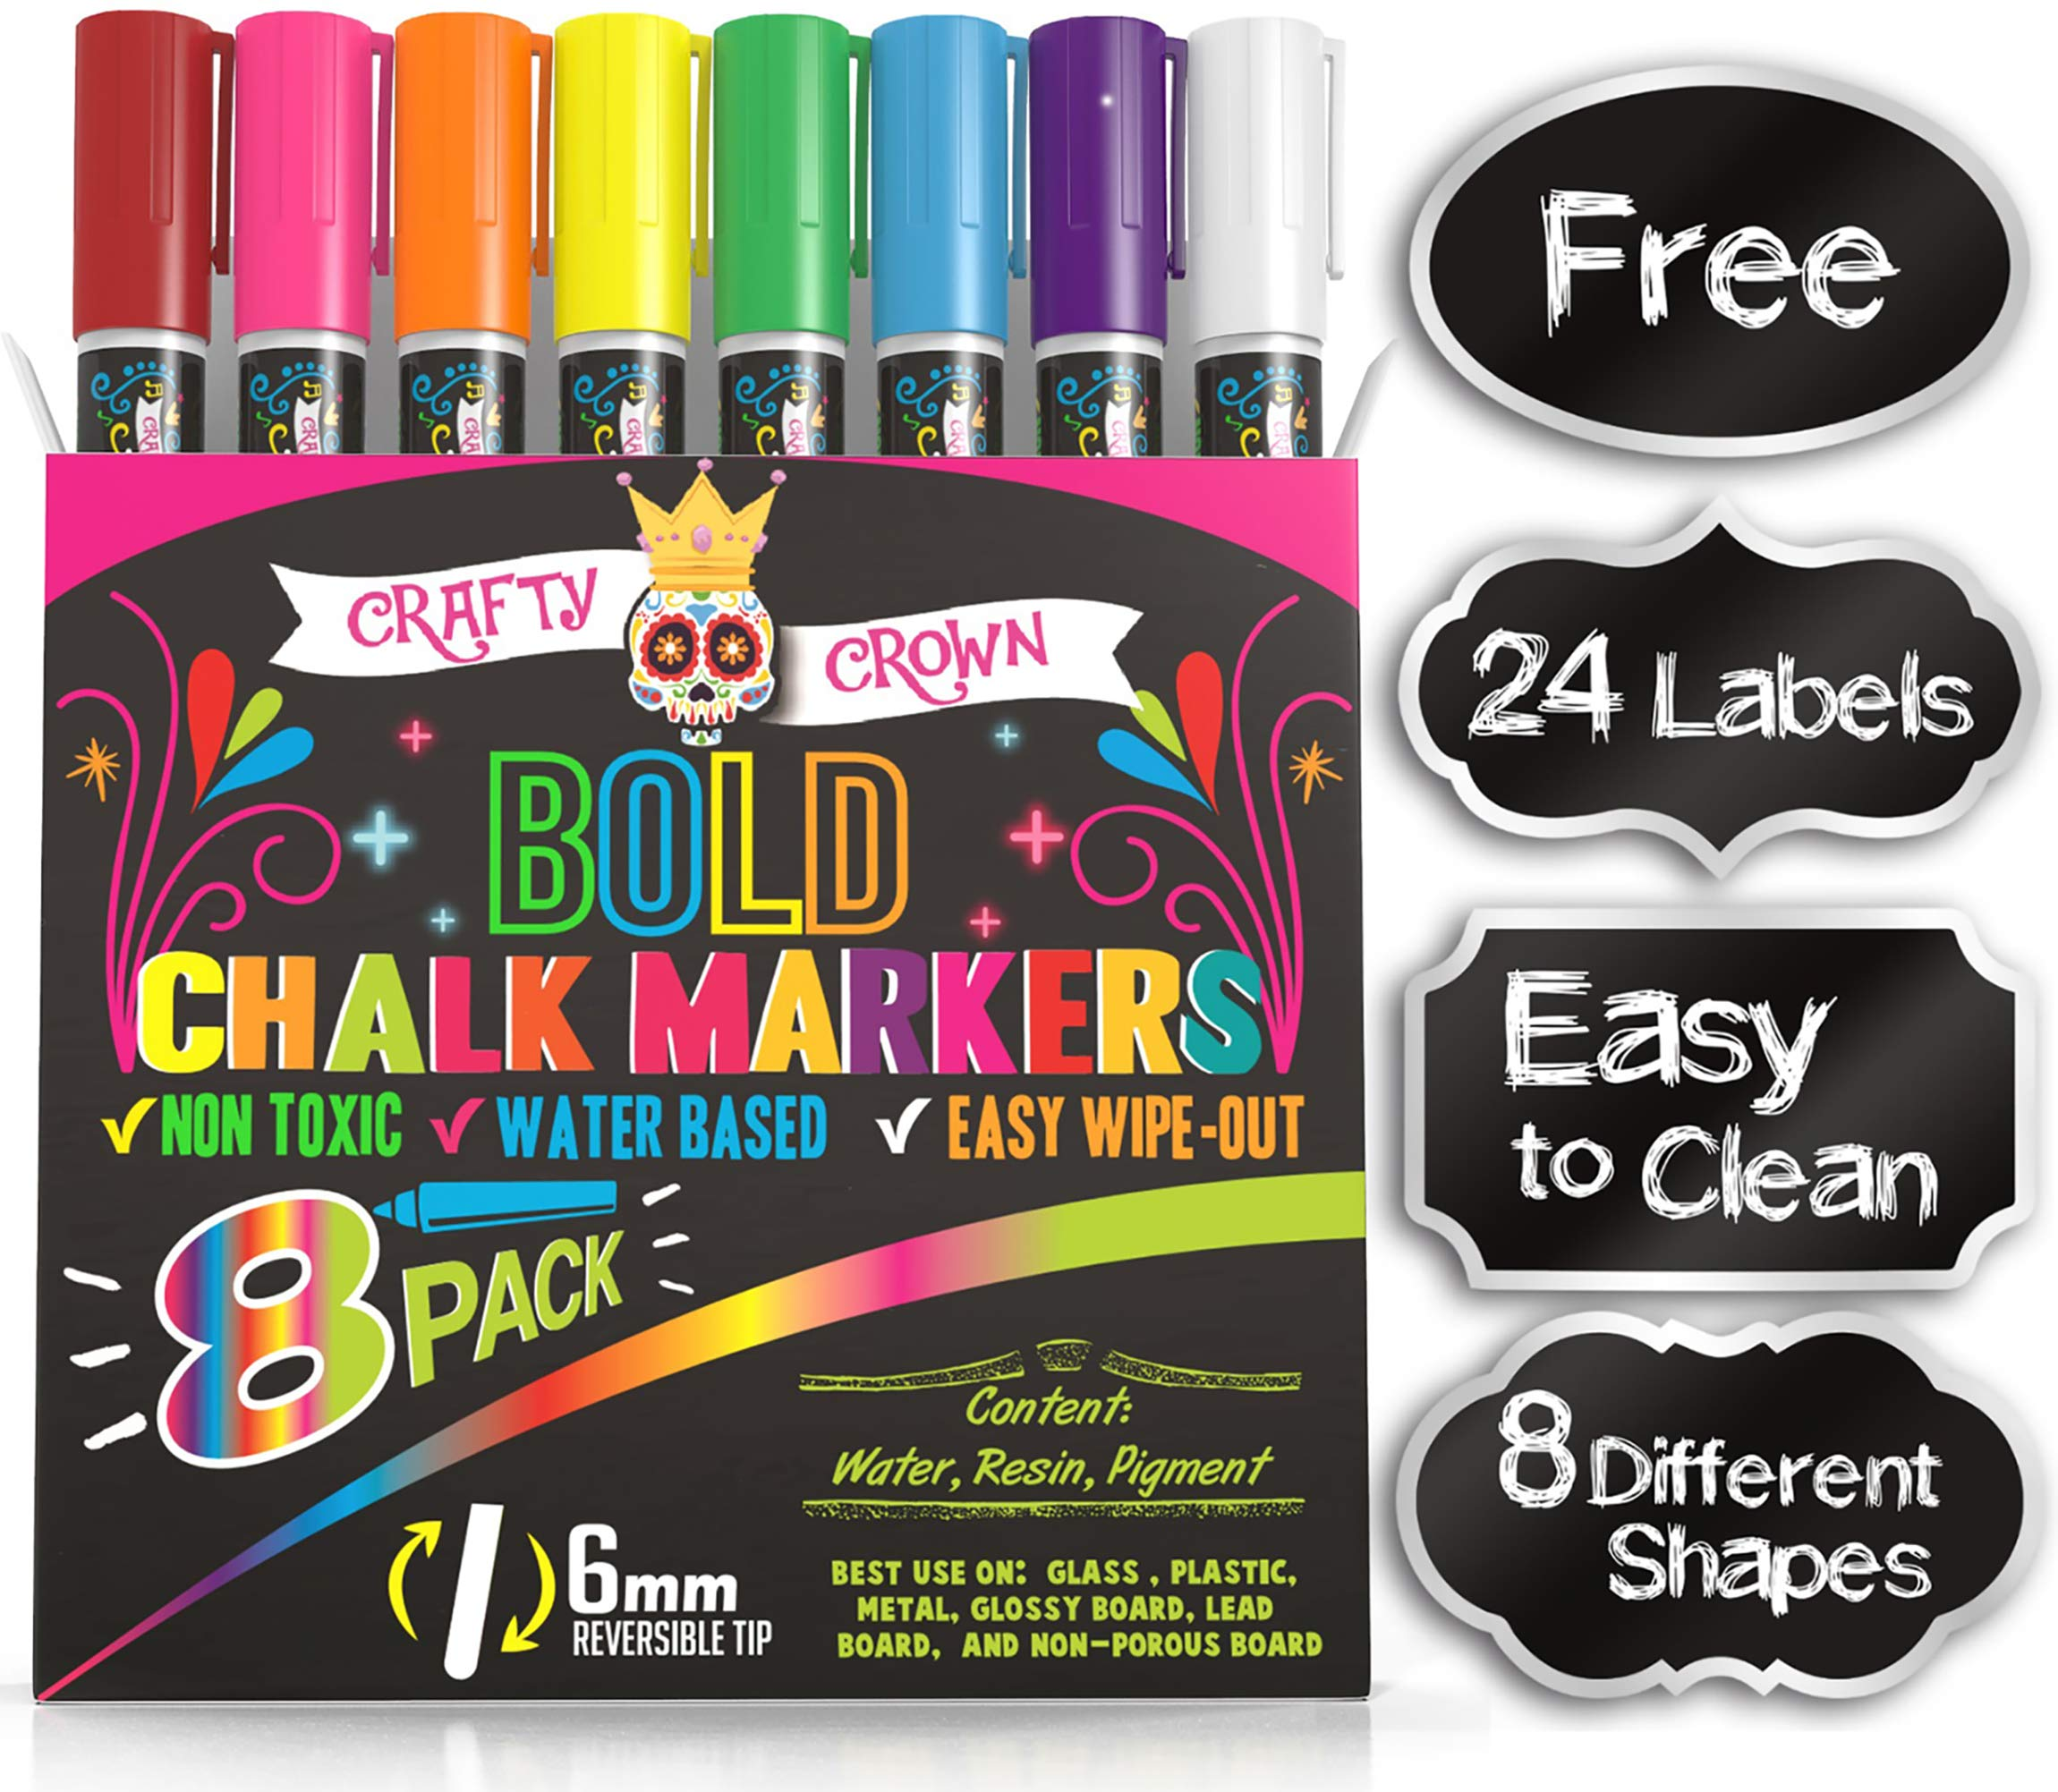 Liquid Chalk Markers for Blackboards - Bold Color Dry Erase Marker - Chalk Markers for Chalkboard Signs, Windows, Blackboard, Glass - 6mm Reversible Tip (8 Pack) - 24 Chalkboard Labels Included by Crafty Crown